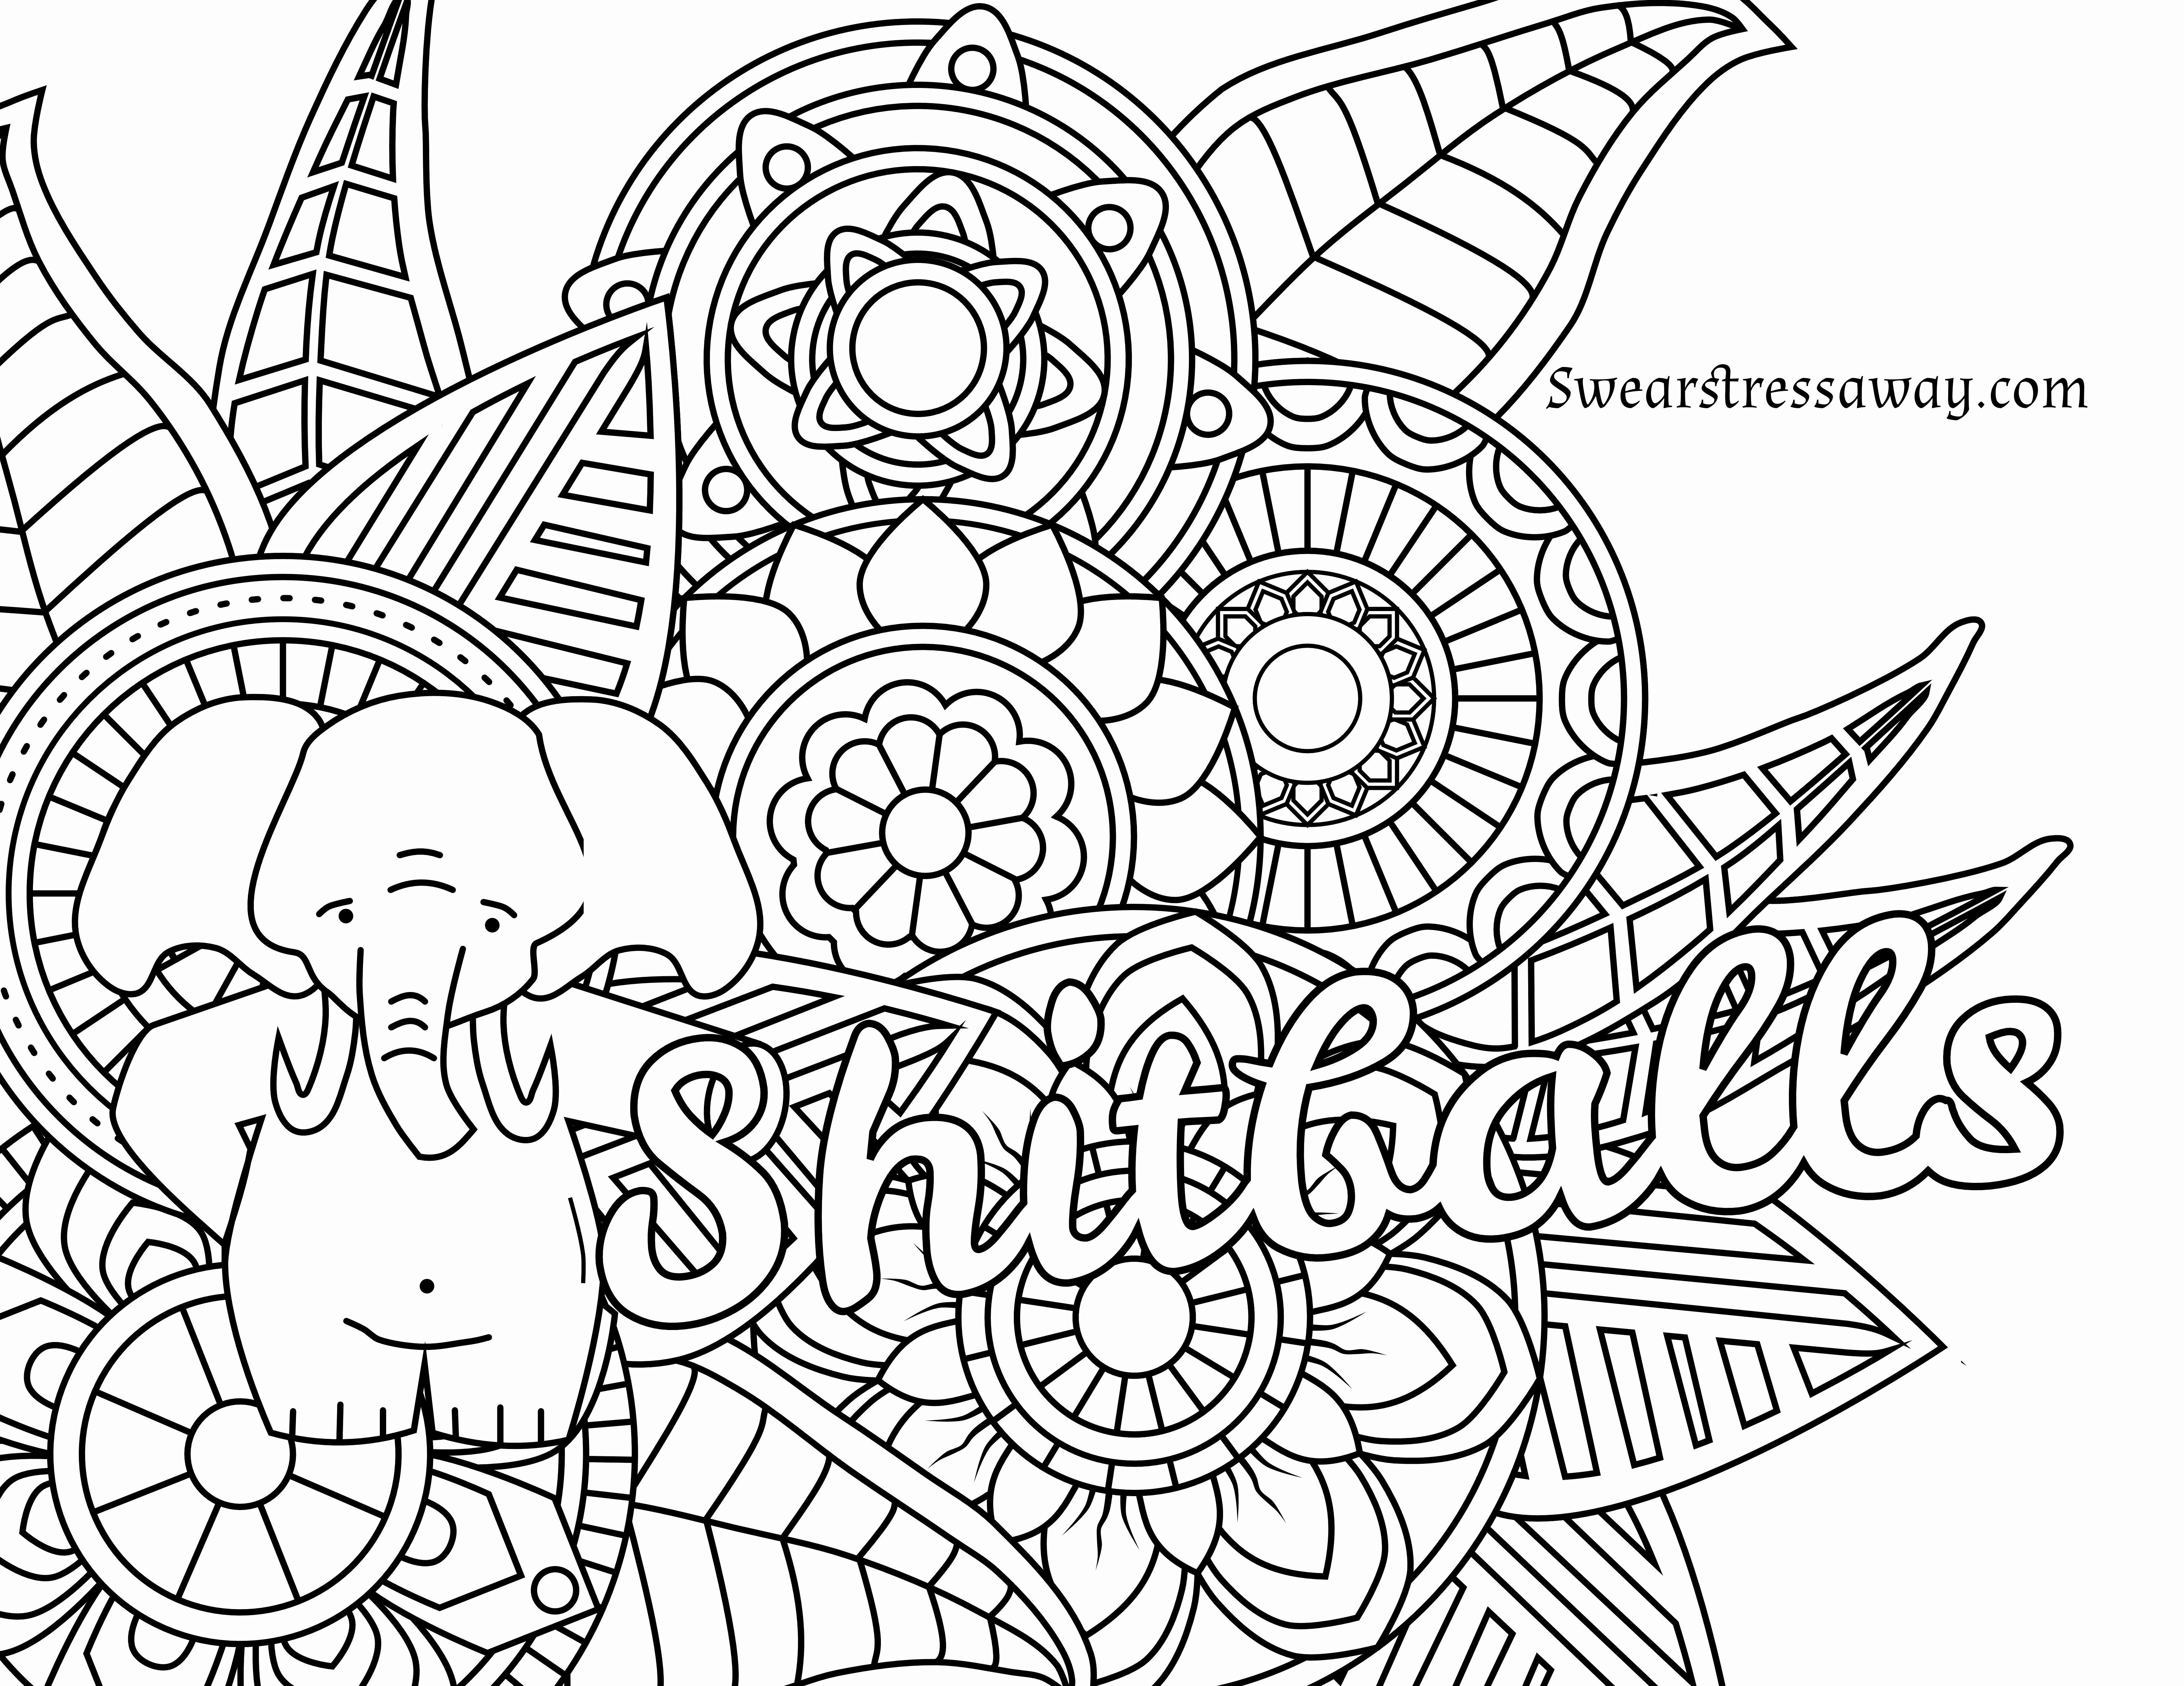 Coloring Flowers Games Lovely Coloring Pages For Kids Games Fall Coloring Pages Words Coloring Book Cool Coloring Pages